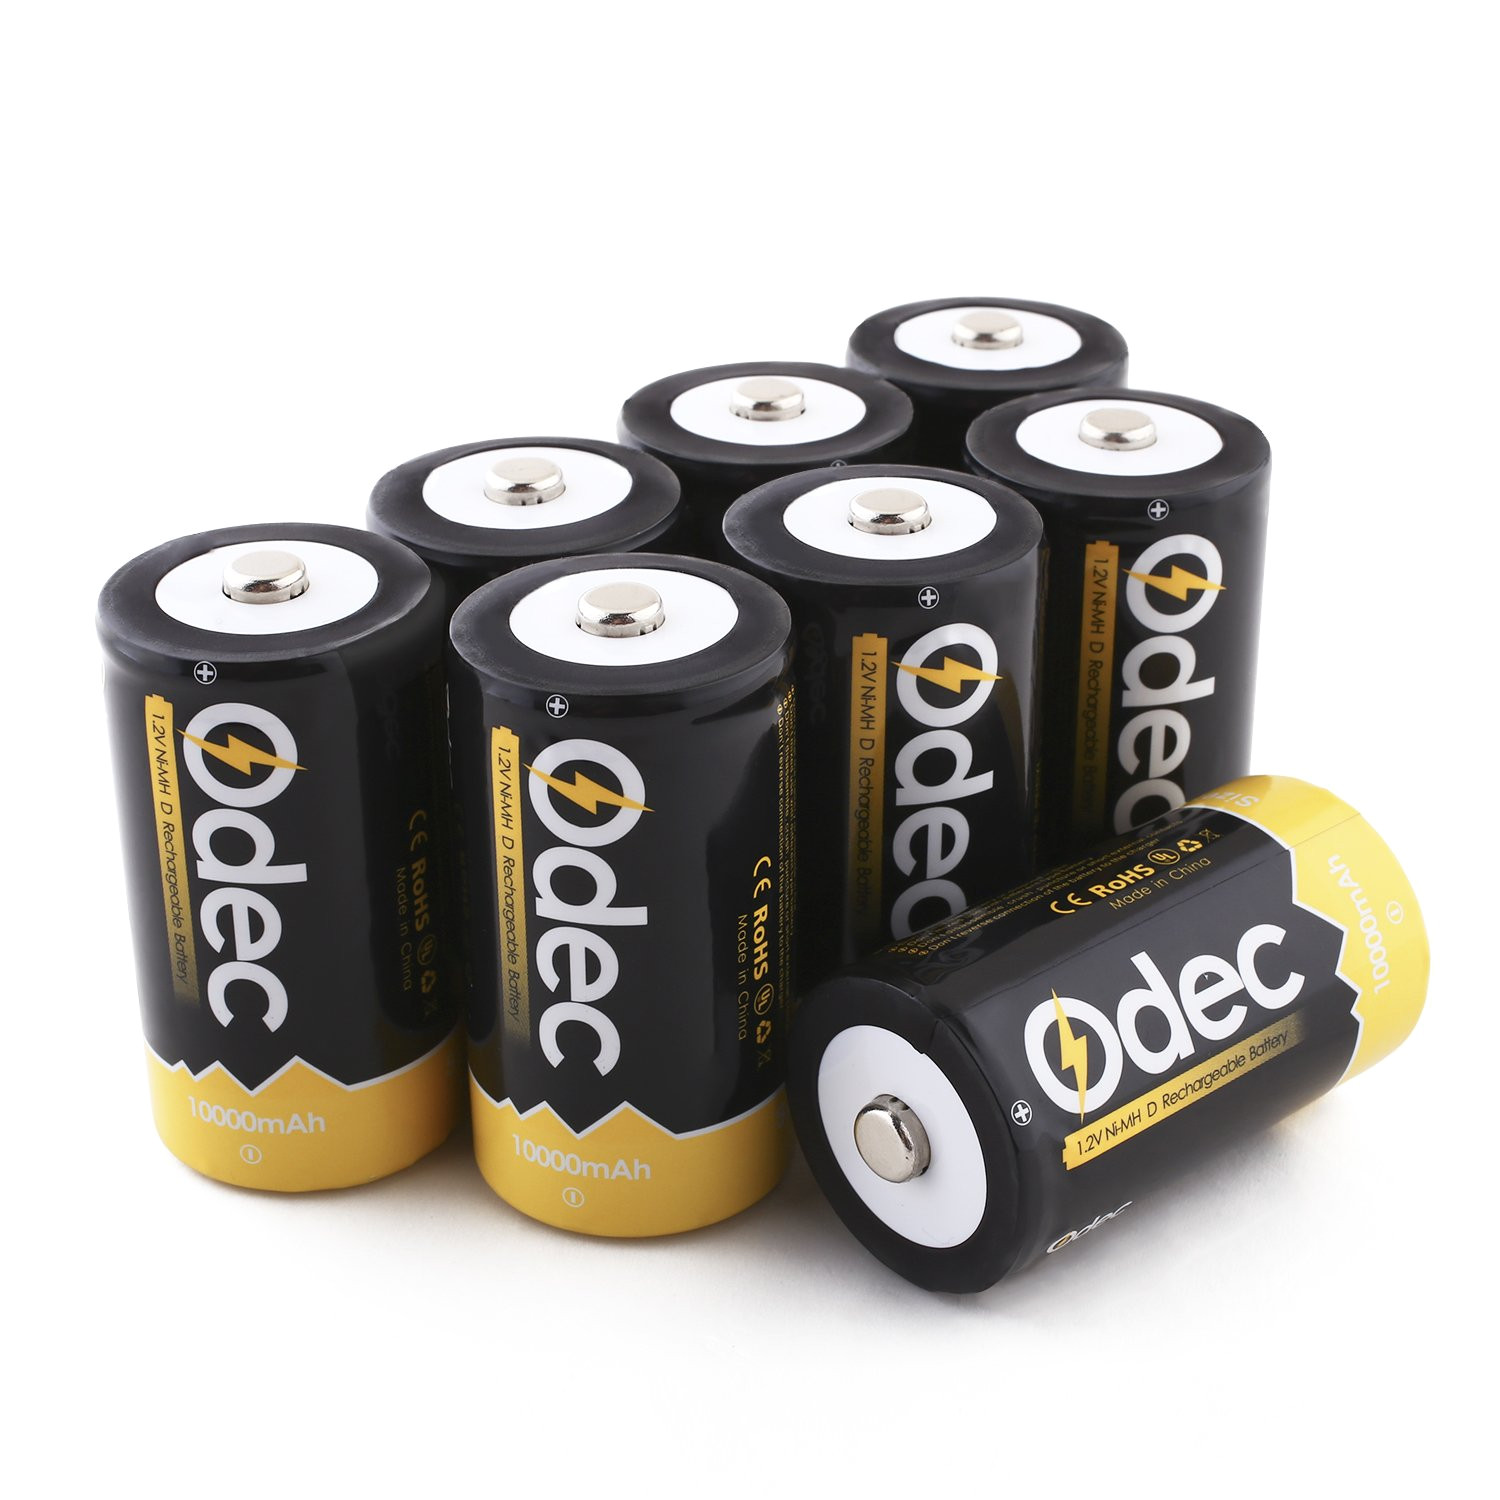 amazon com odec d cell rechargeable batteries 8 pack 10000mah deep cycle nimh battery home audio theater